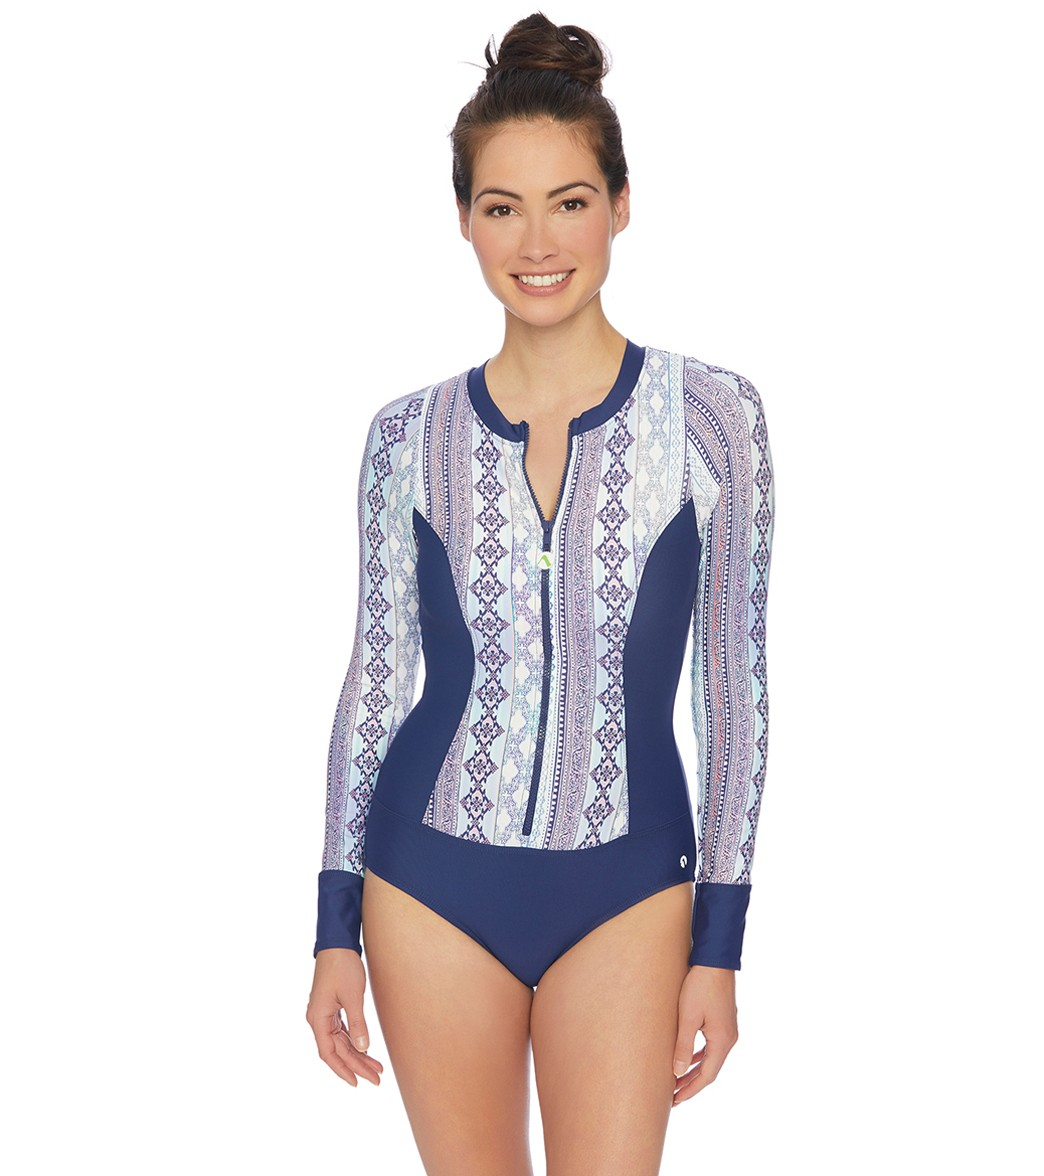 d74f70d37 Next Stargazing Malibu High Neck Long Sleeve One Piece Swimsuit at  SwimOutlet.com - Free Shipping